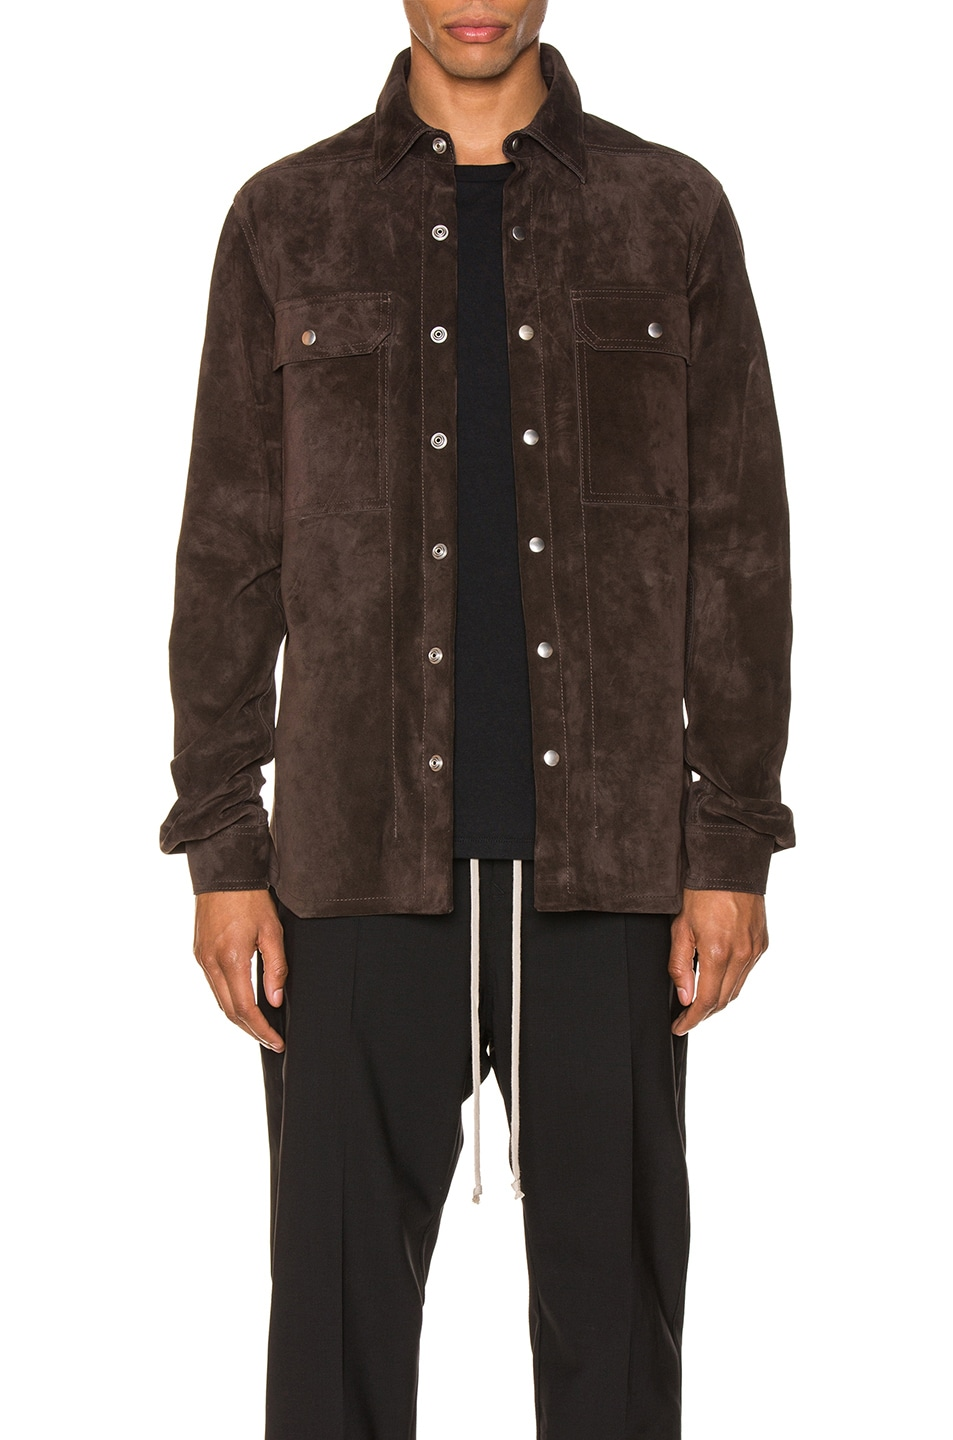 Image 1 of Rick Owens Outershirt in Brown